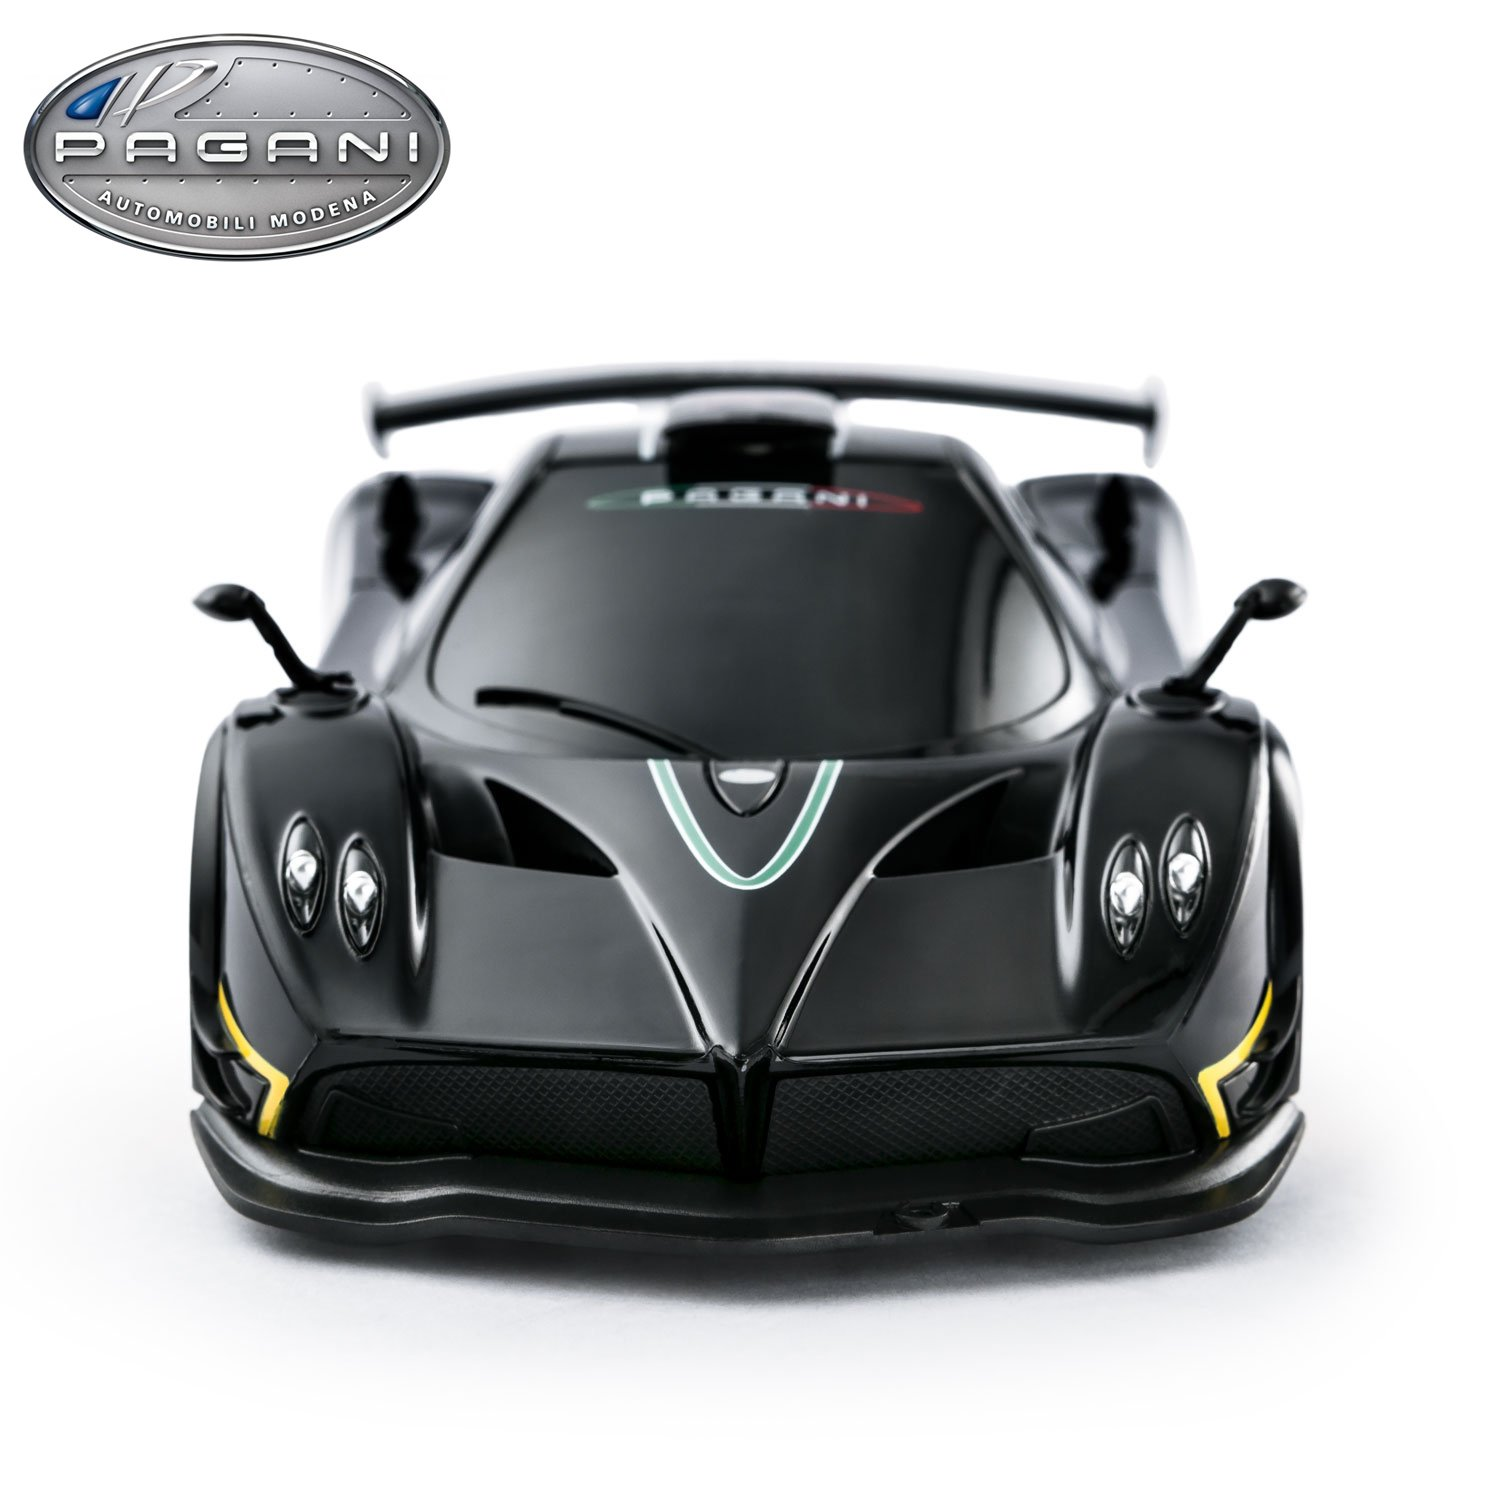 Pagani Zonda R Electric RC Remote Control Car Kids Toys For Boys Girls    1:24 Black 40Mhz RTR: Amazon.co.uk: Toys U0026 Games